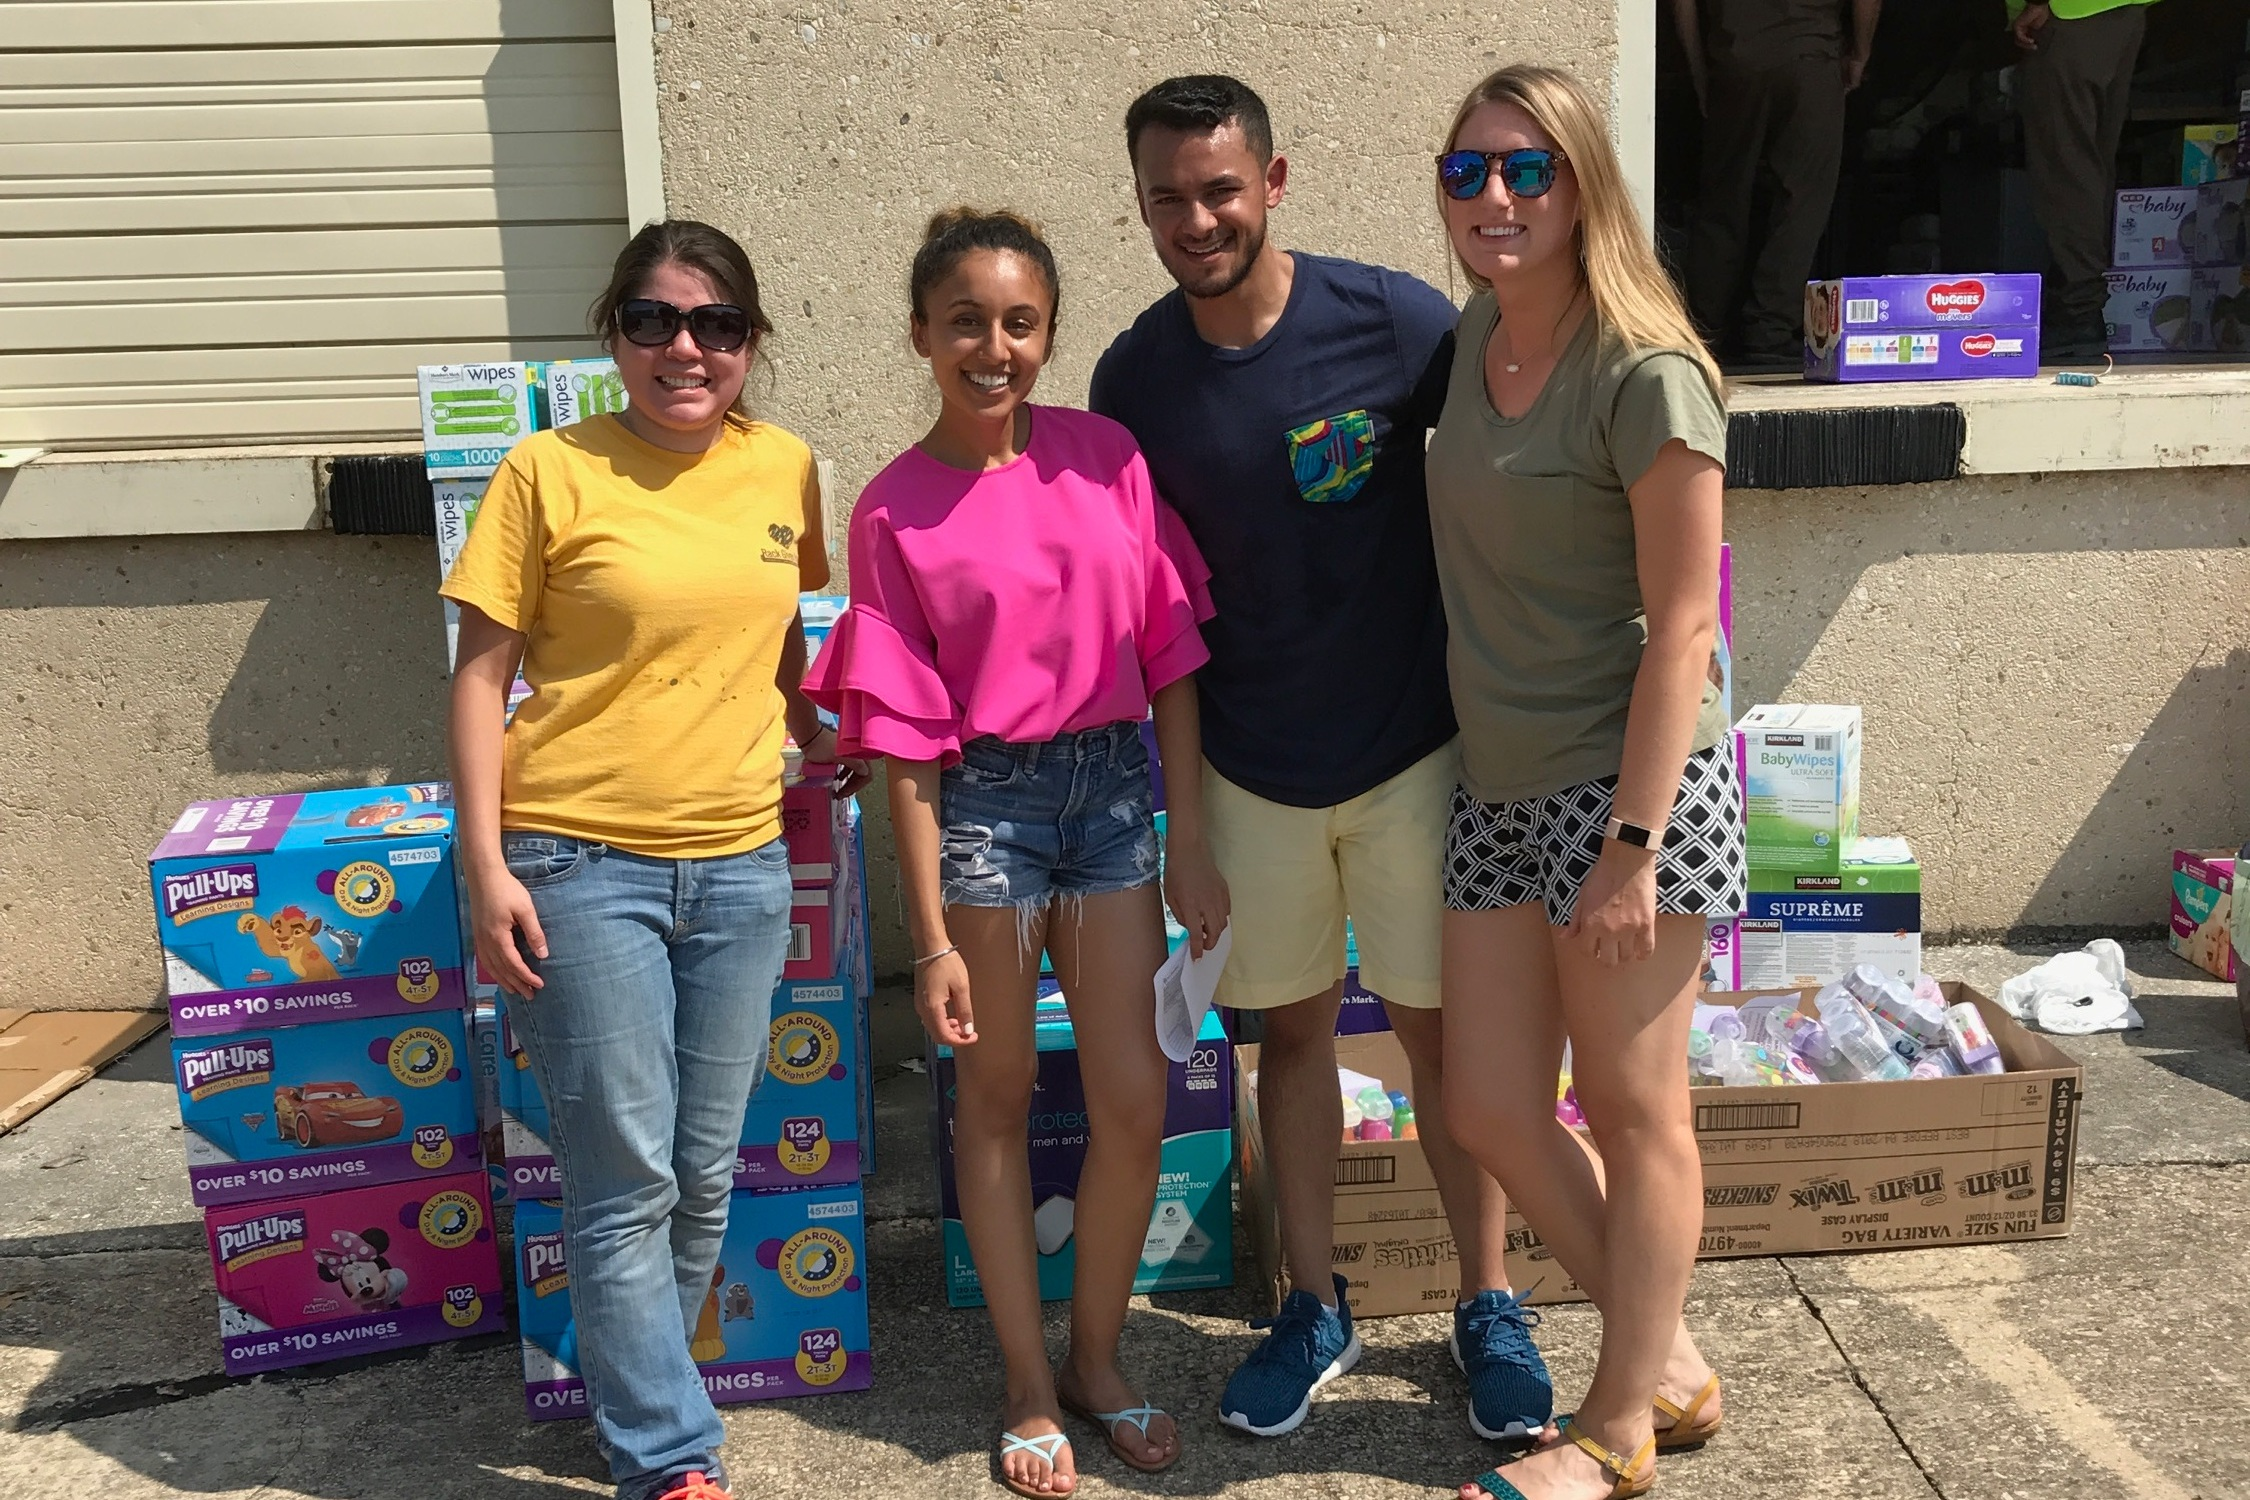 - We are currently working on disaster relief activities to help Hurricane Irma victims in Miami, Florida area, and relief planning and activities for Puerto Rico. Right after Hurricane Harvey, our team has delivered baby diapers, baby wipes and milk bottles to Hurricane Harvey Evacuees in shelters in San Antonio, Texas.